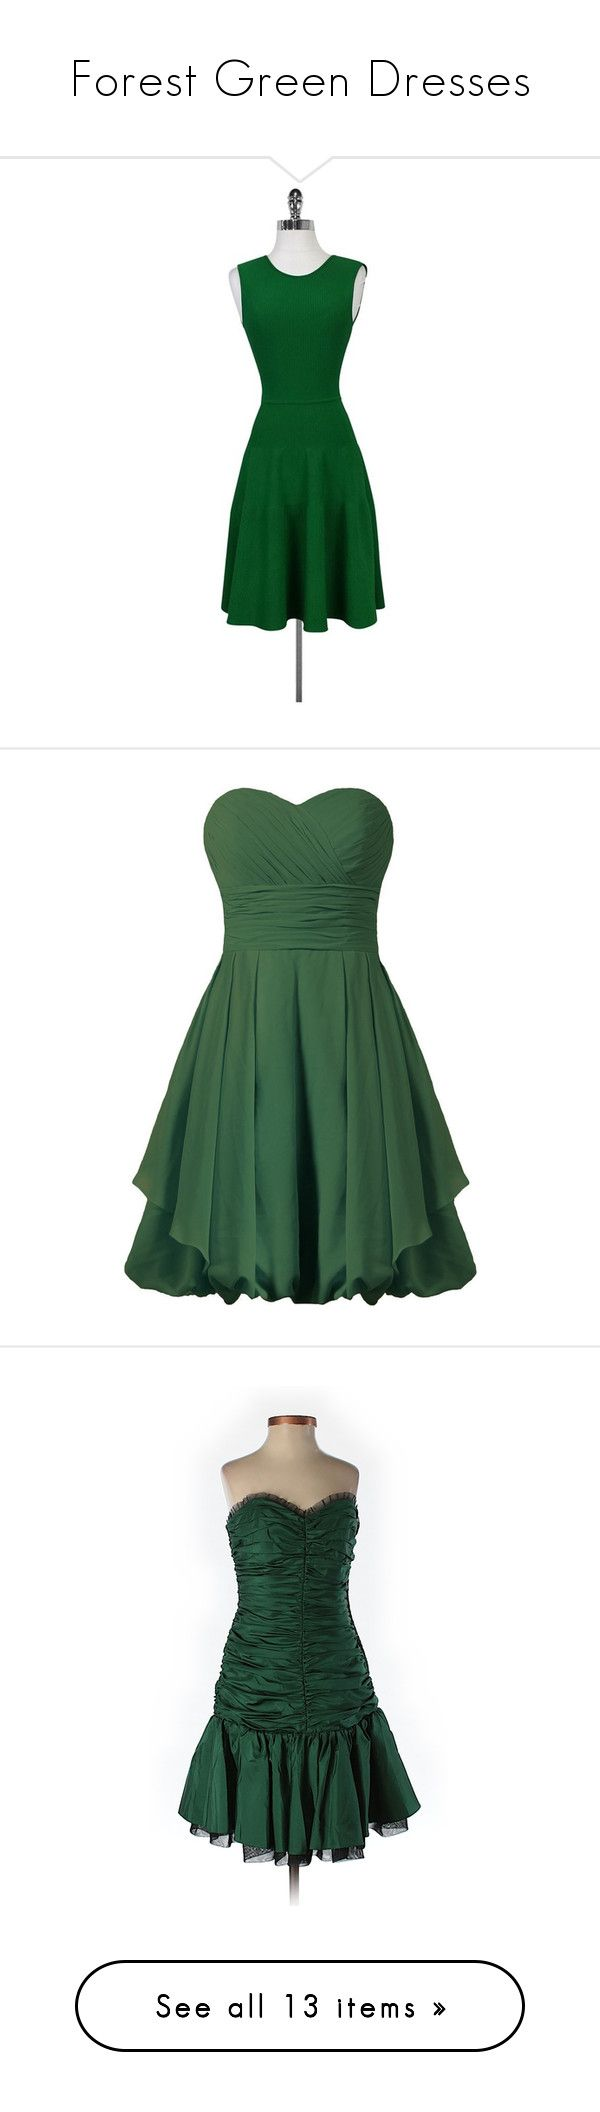 """Forest Green Dresses"" by tegan-b-riley on Polyvore featuring dresses, green, fitted flare dress, circle skirts, skater skirt, sleeveless fitted dress, flared skater skirt, bridesmaid cocktail dresses, bridesmaid dresses and short green cocktail dress"